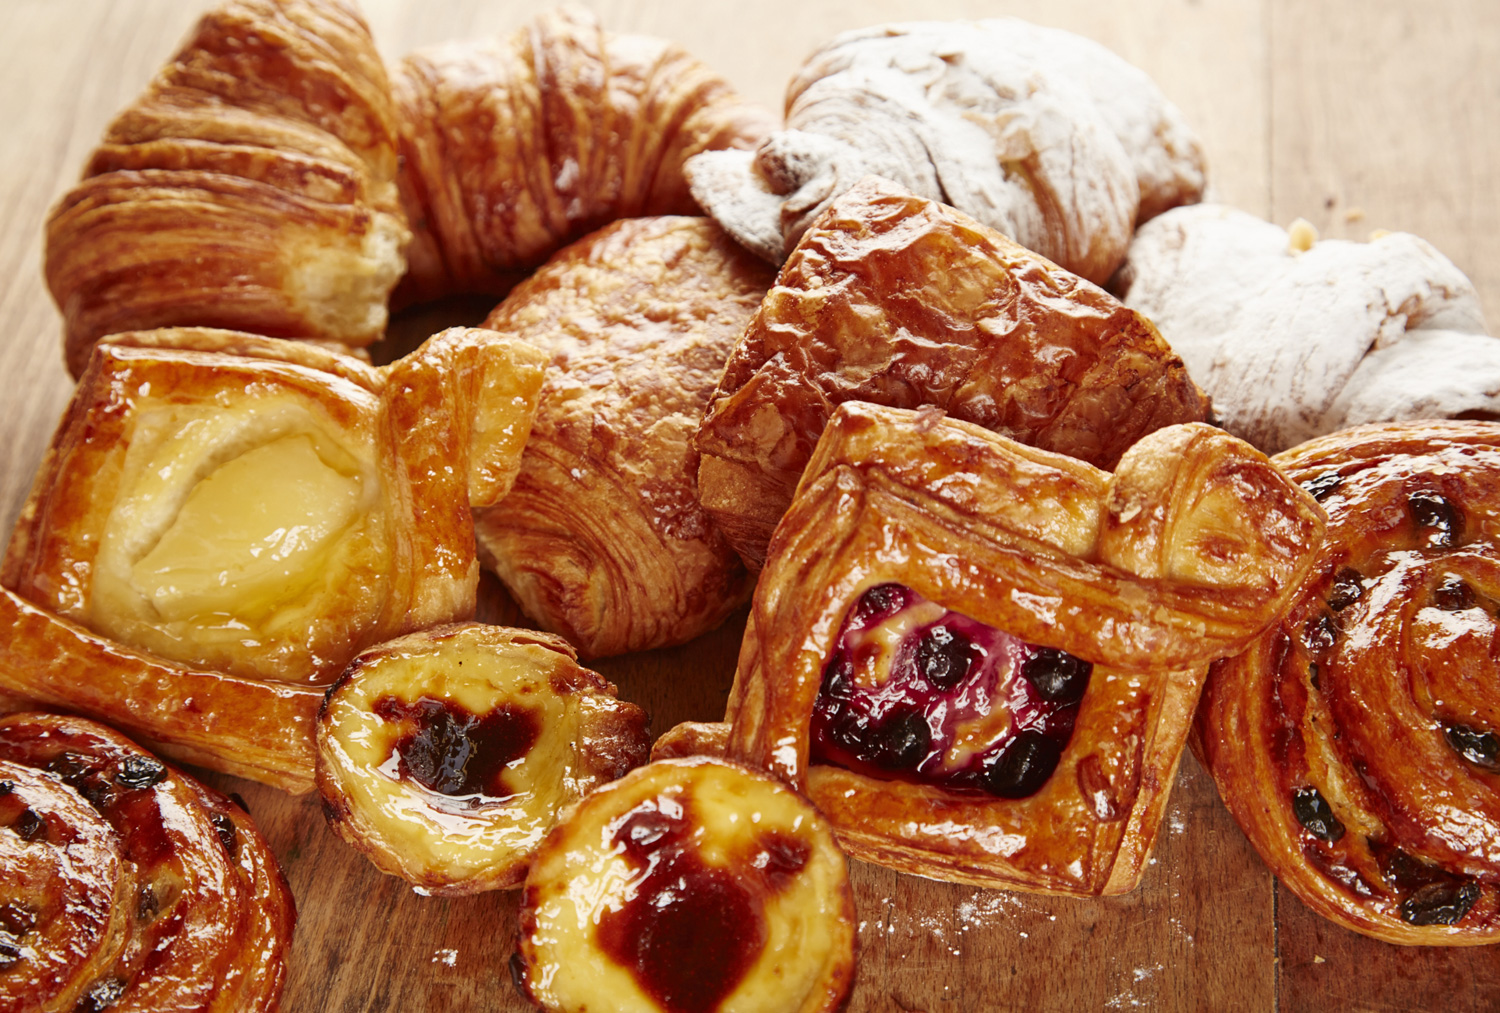 Boulangerie Jade Selection Of Pastries